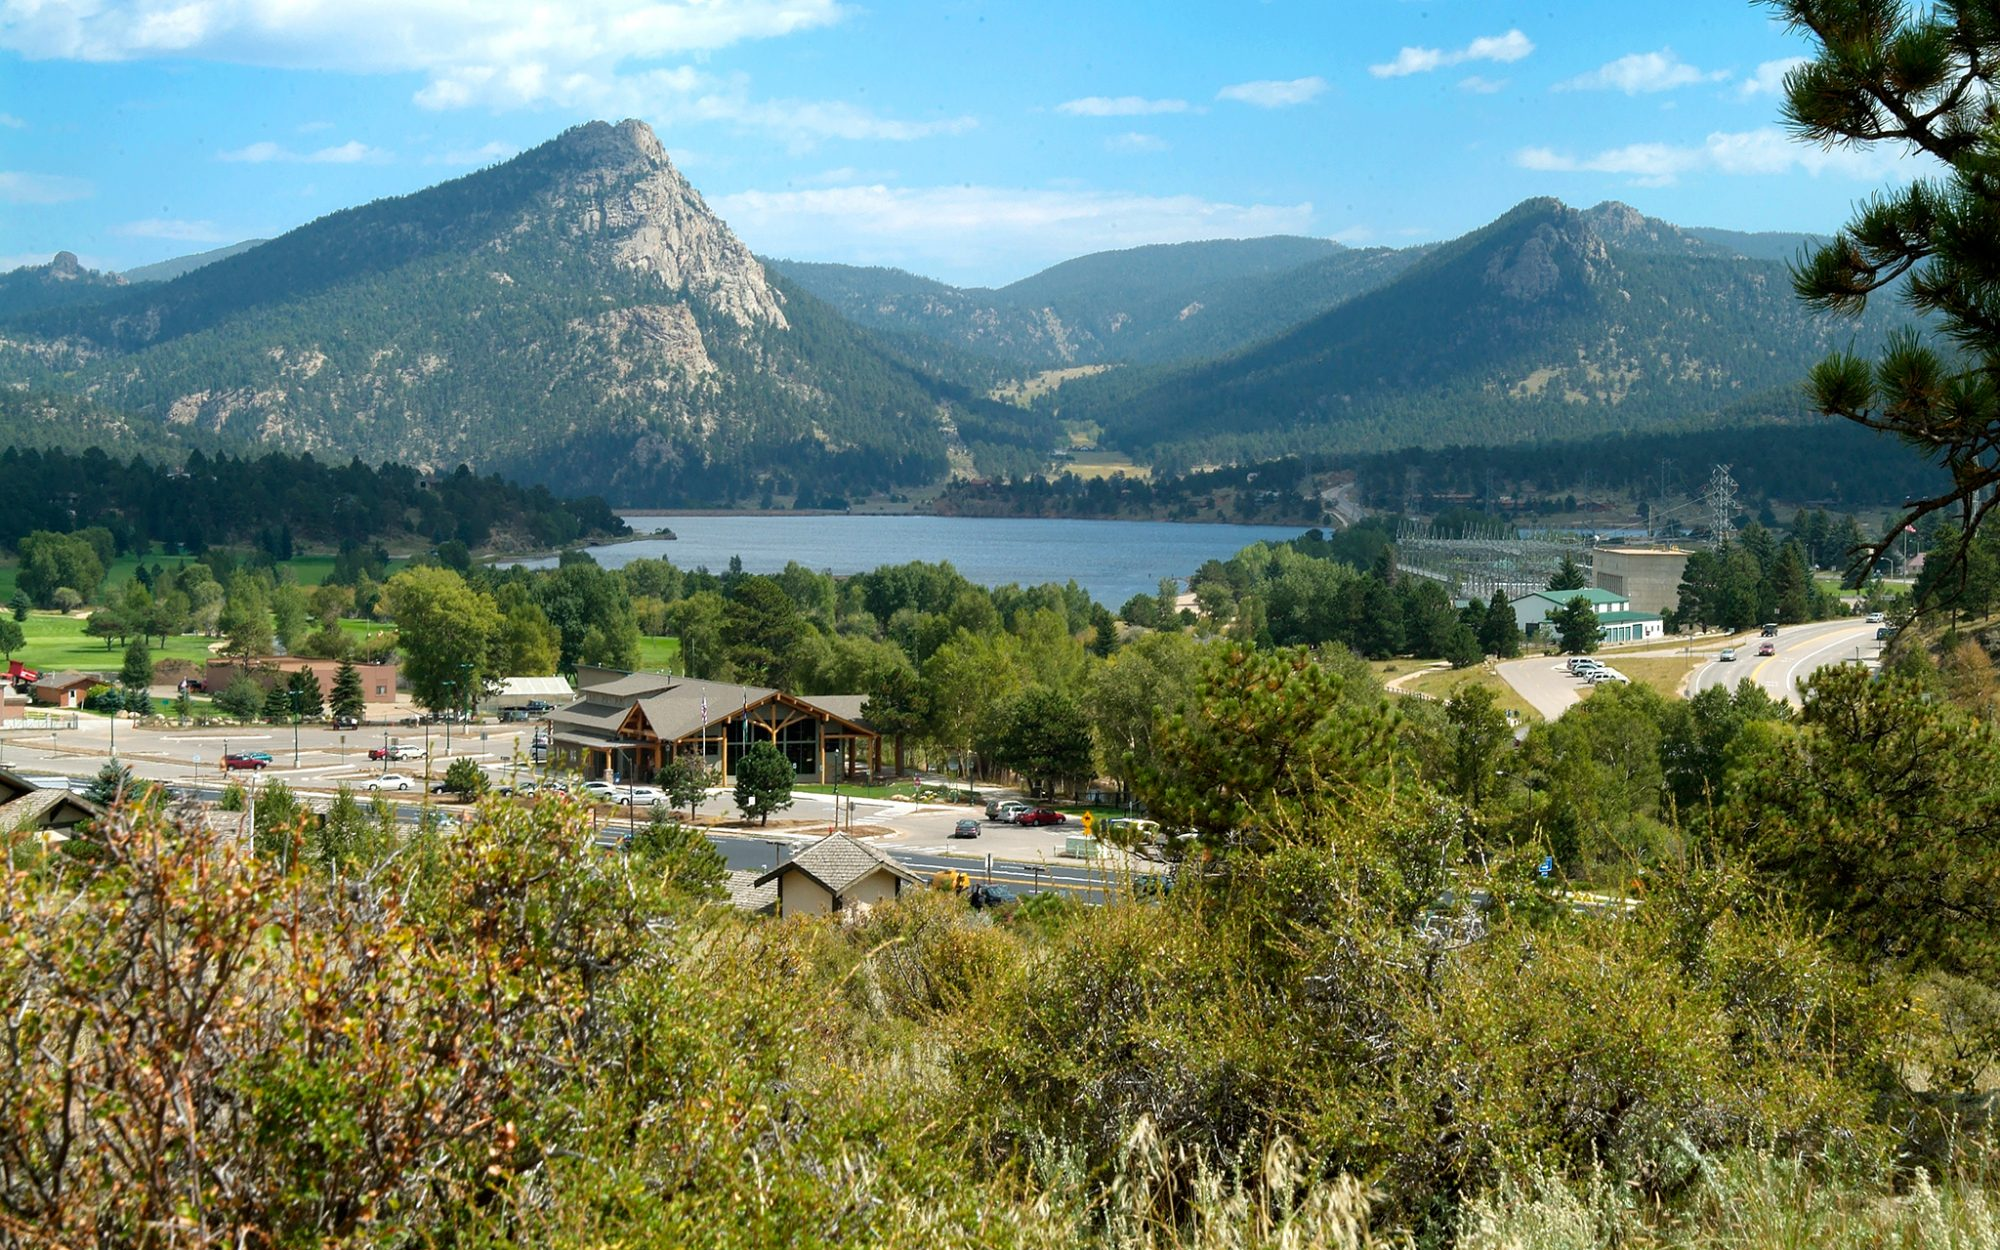 America's Best Towns for July 4th: Estes Park